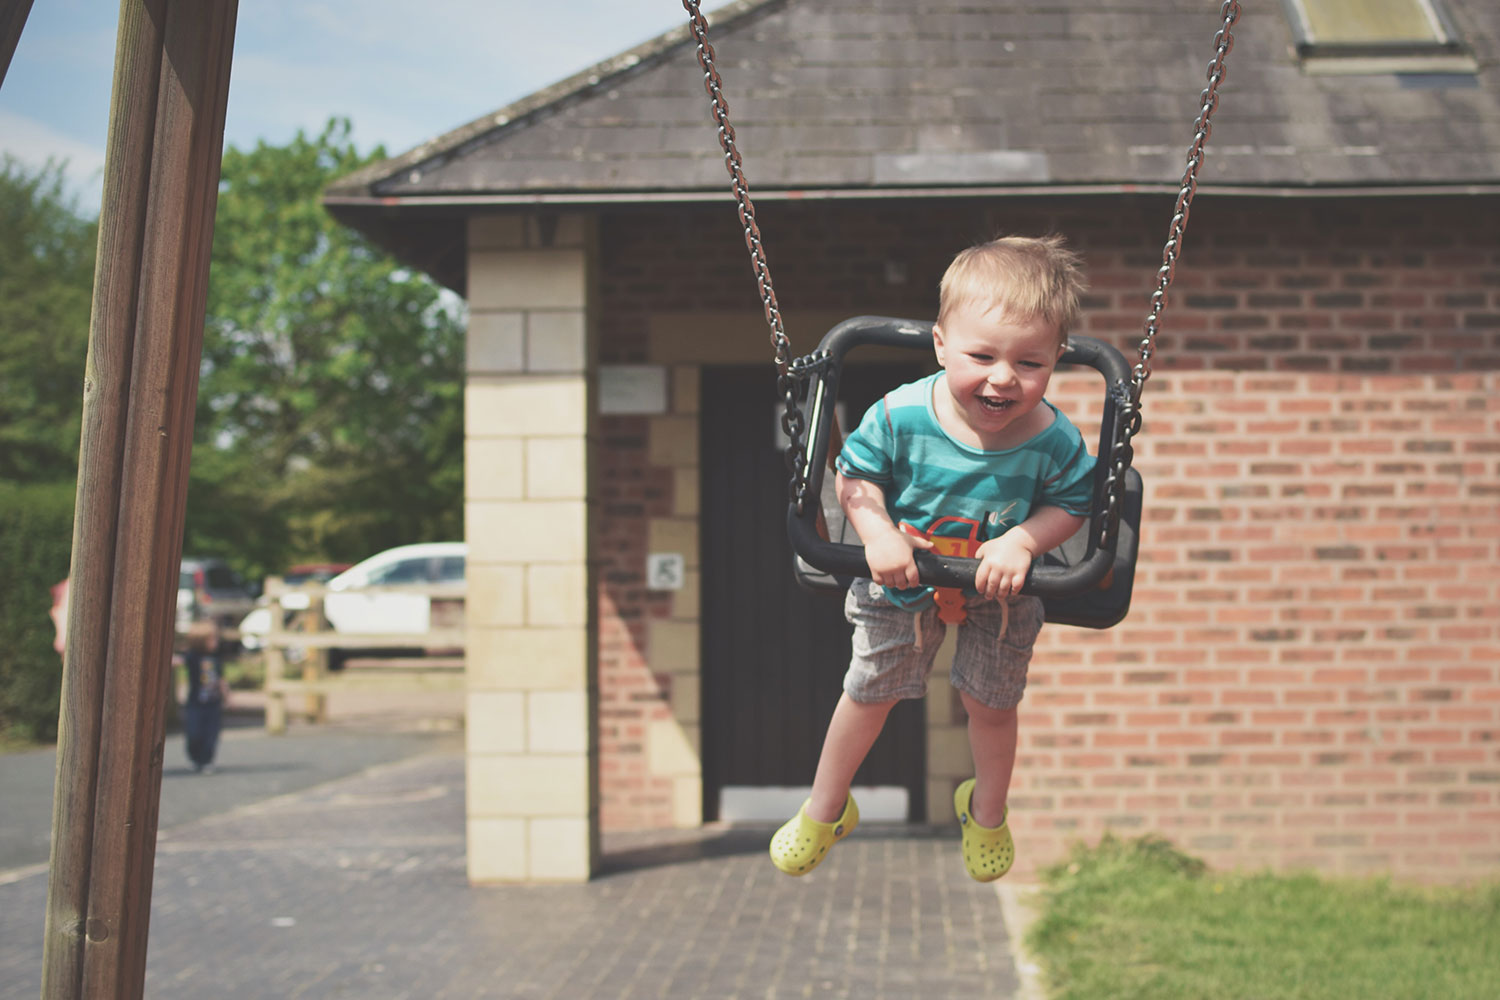 One Beautiful Sweaty Sunday at Stratford-upon-Avon - Toddler playing and laughing on the swings at Stratford-upon-Avon on a warm, sunny day